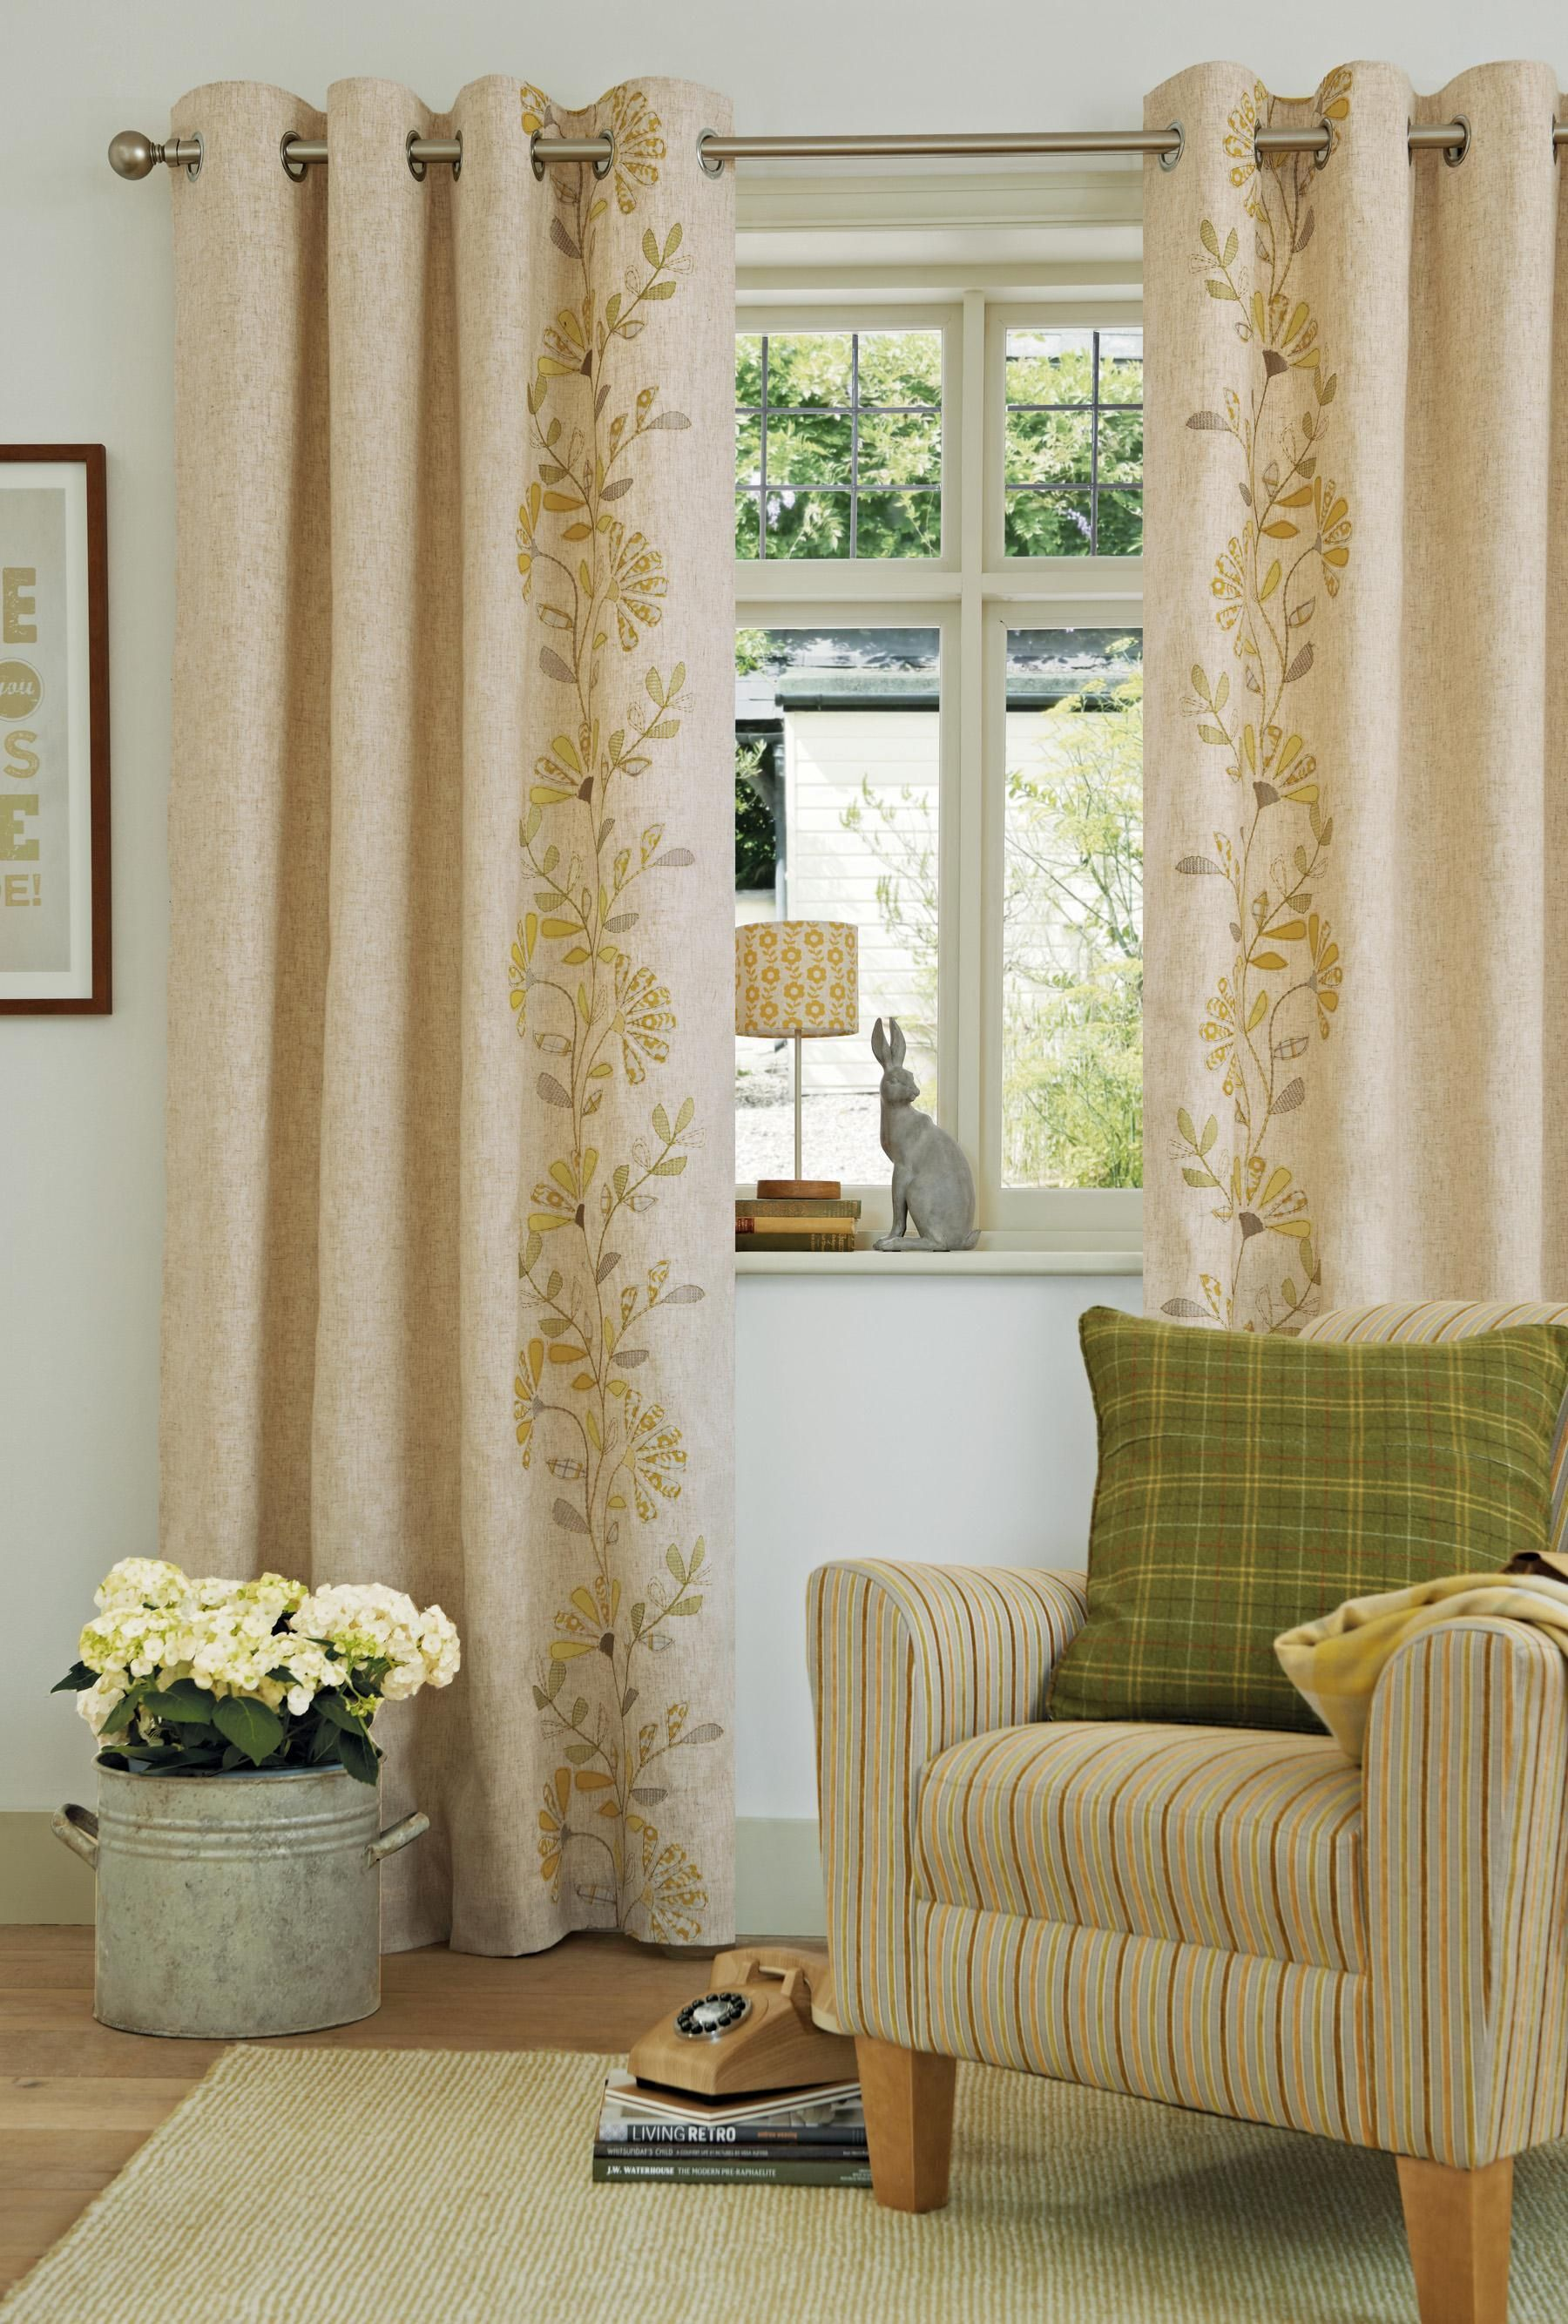 Appliqué Trail Eyelet Curtains from the Next UK online shop